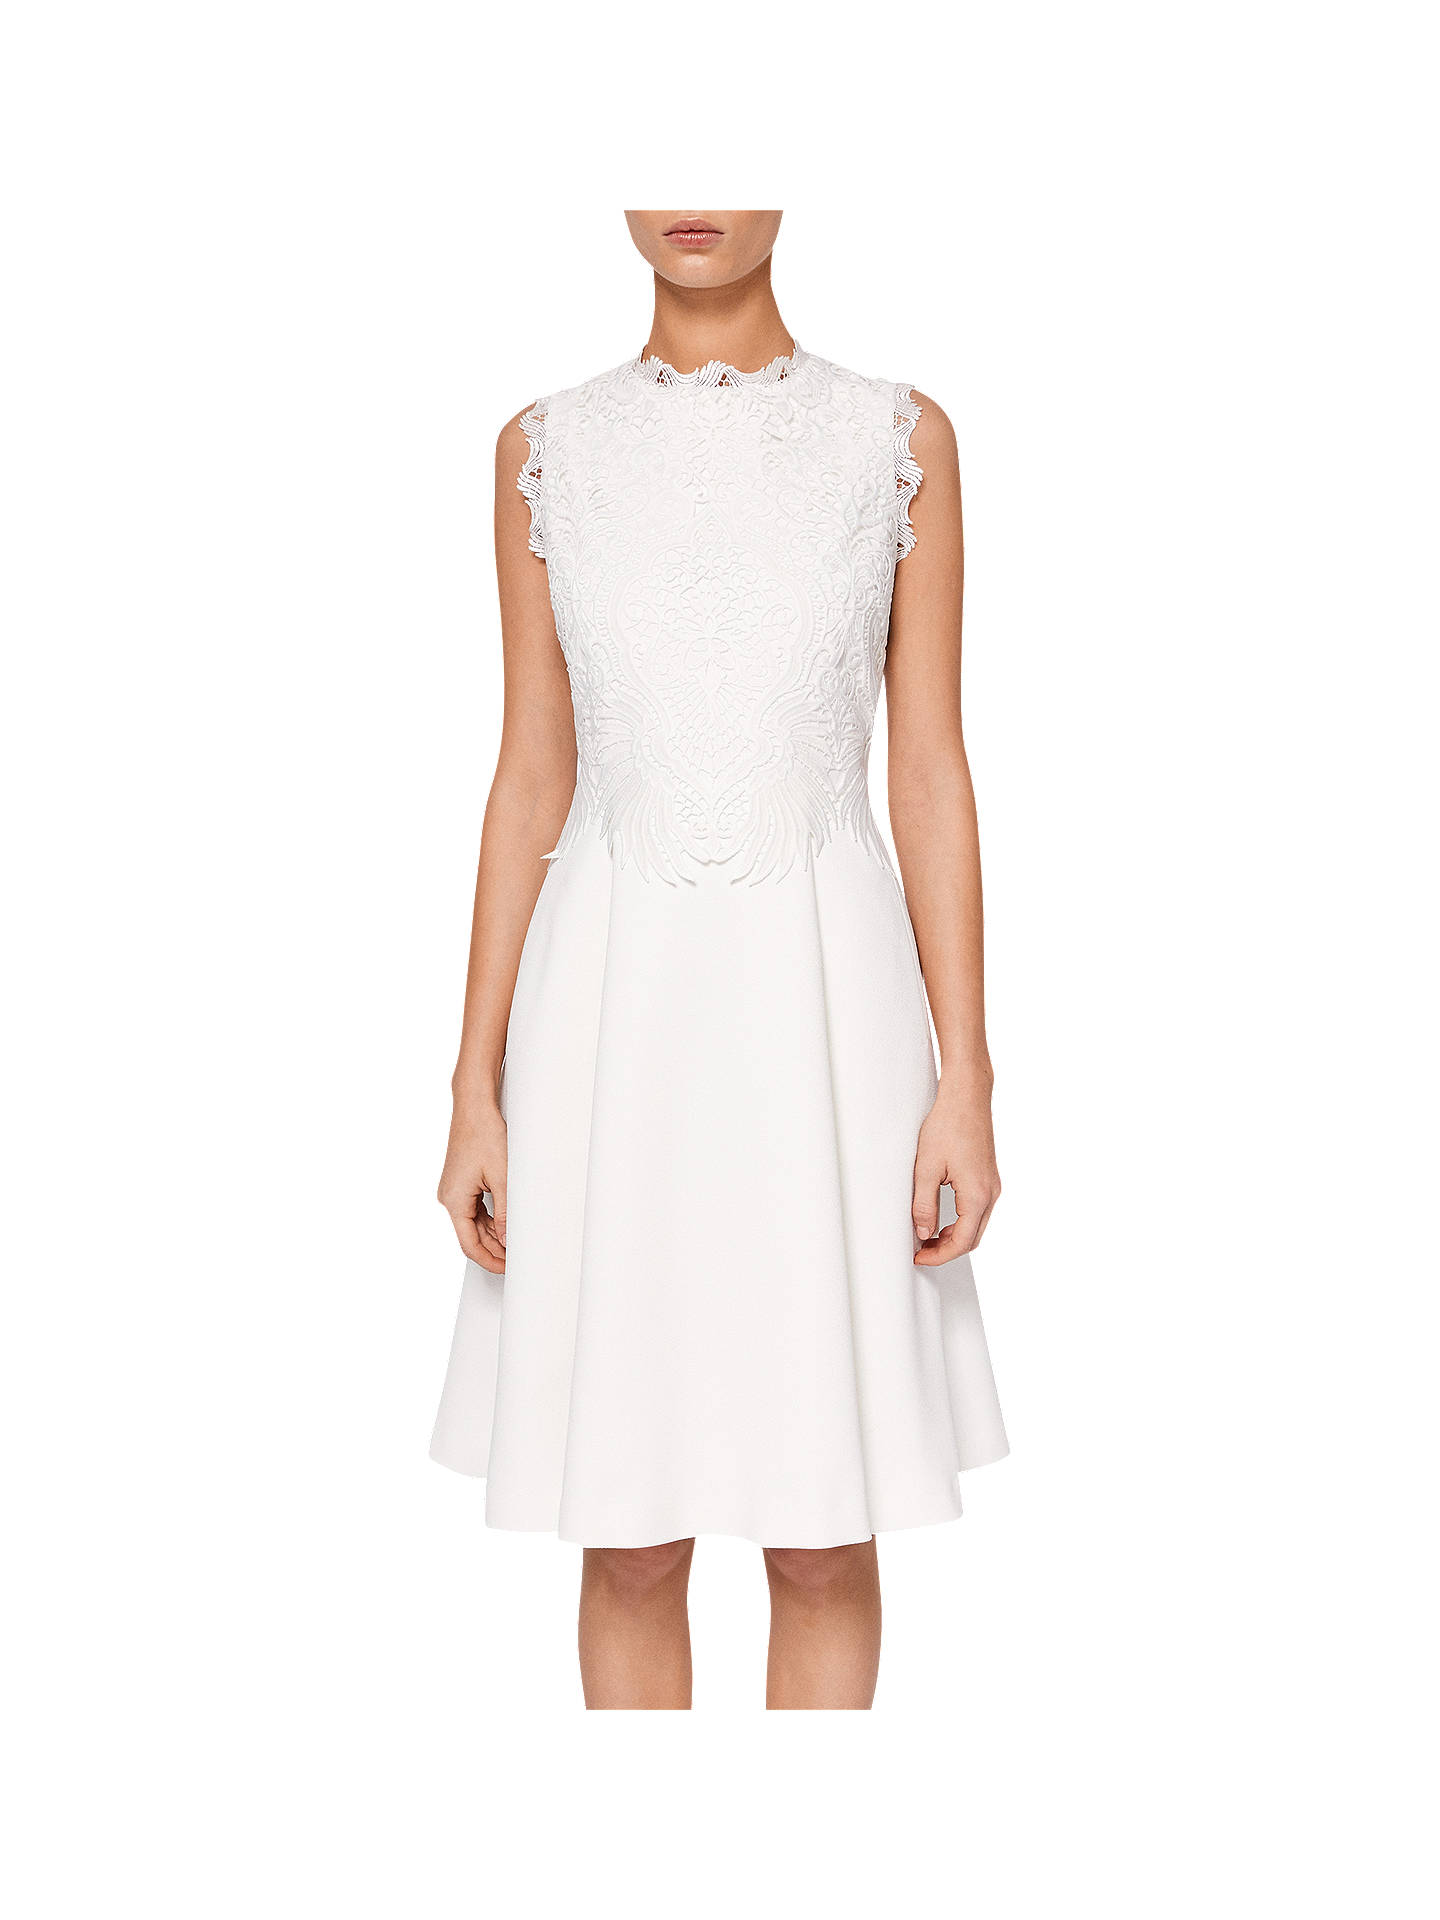 BuyTed Baker Lexiie Lace Bodice Structured Dress, Natural, 0 Online at johnlewis.com